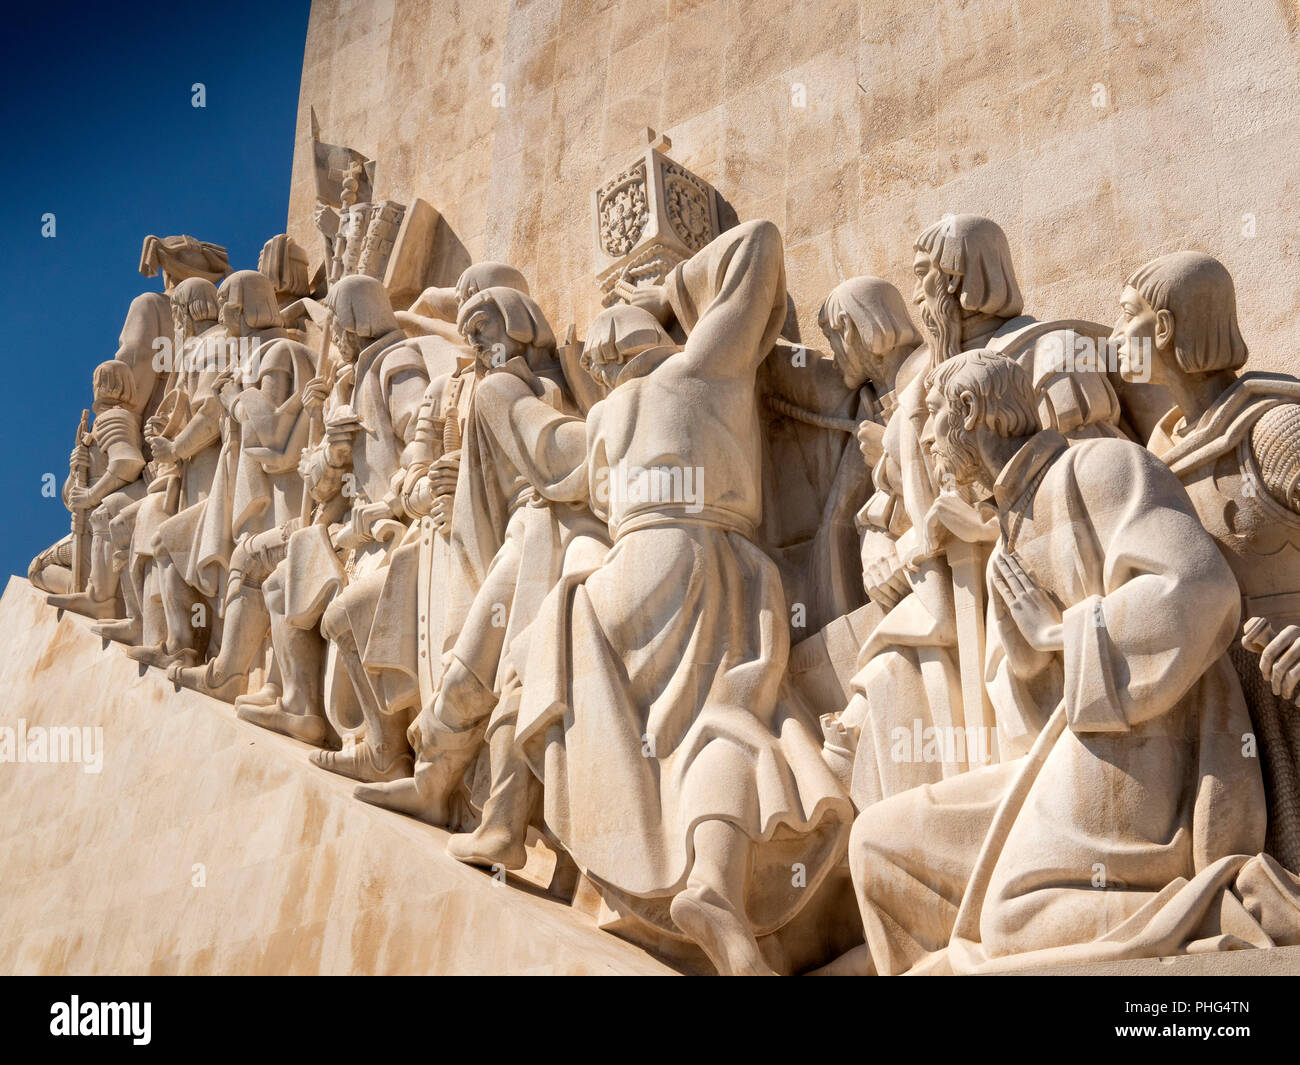 Portugal, Lisbon, Belem, Padrao dos Deccobrimentos, the discoveries monument, memorial to seafaring explorers, statues, detail - Stock Image